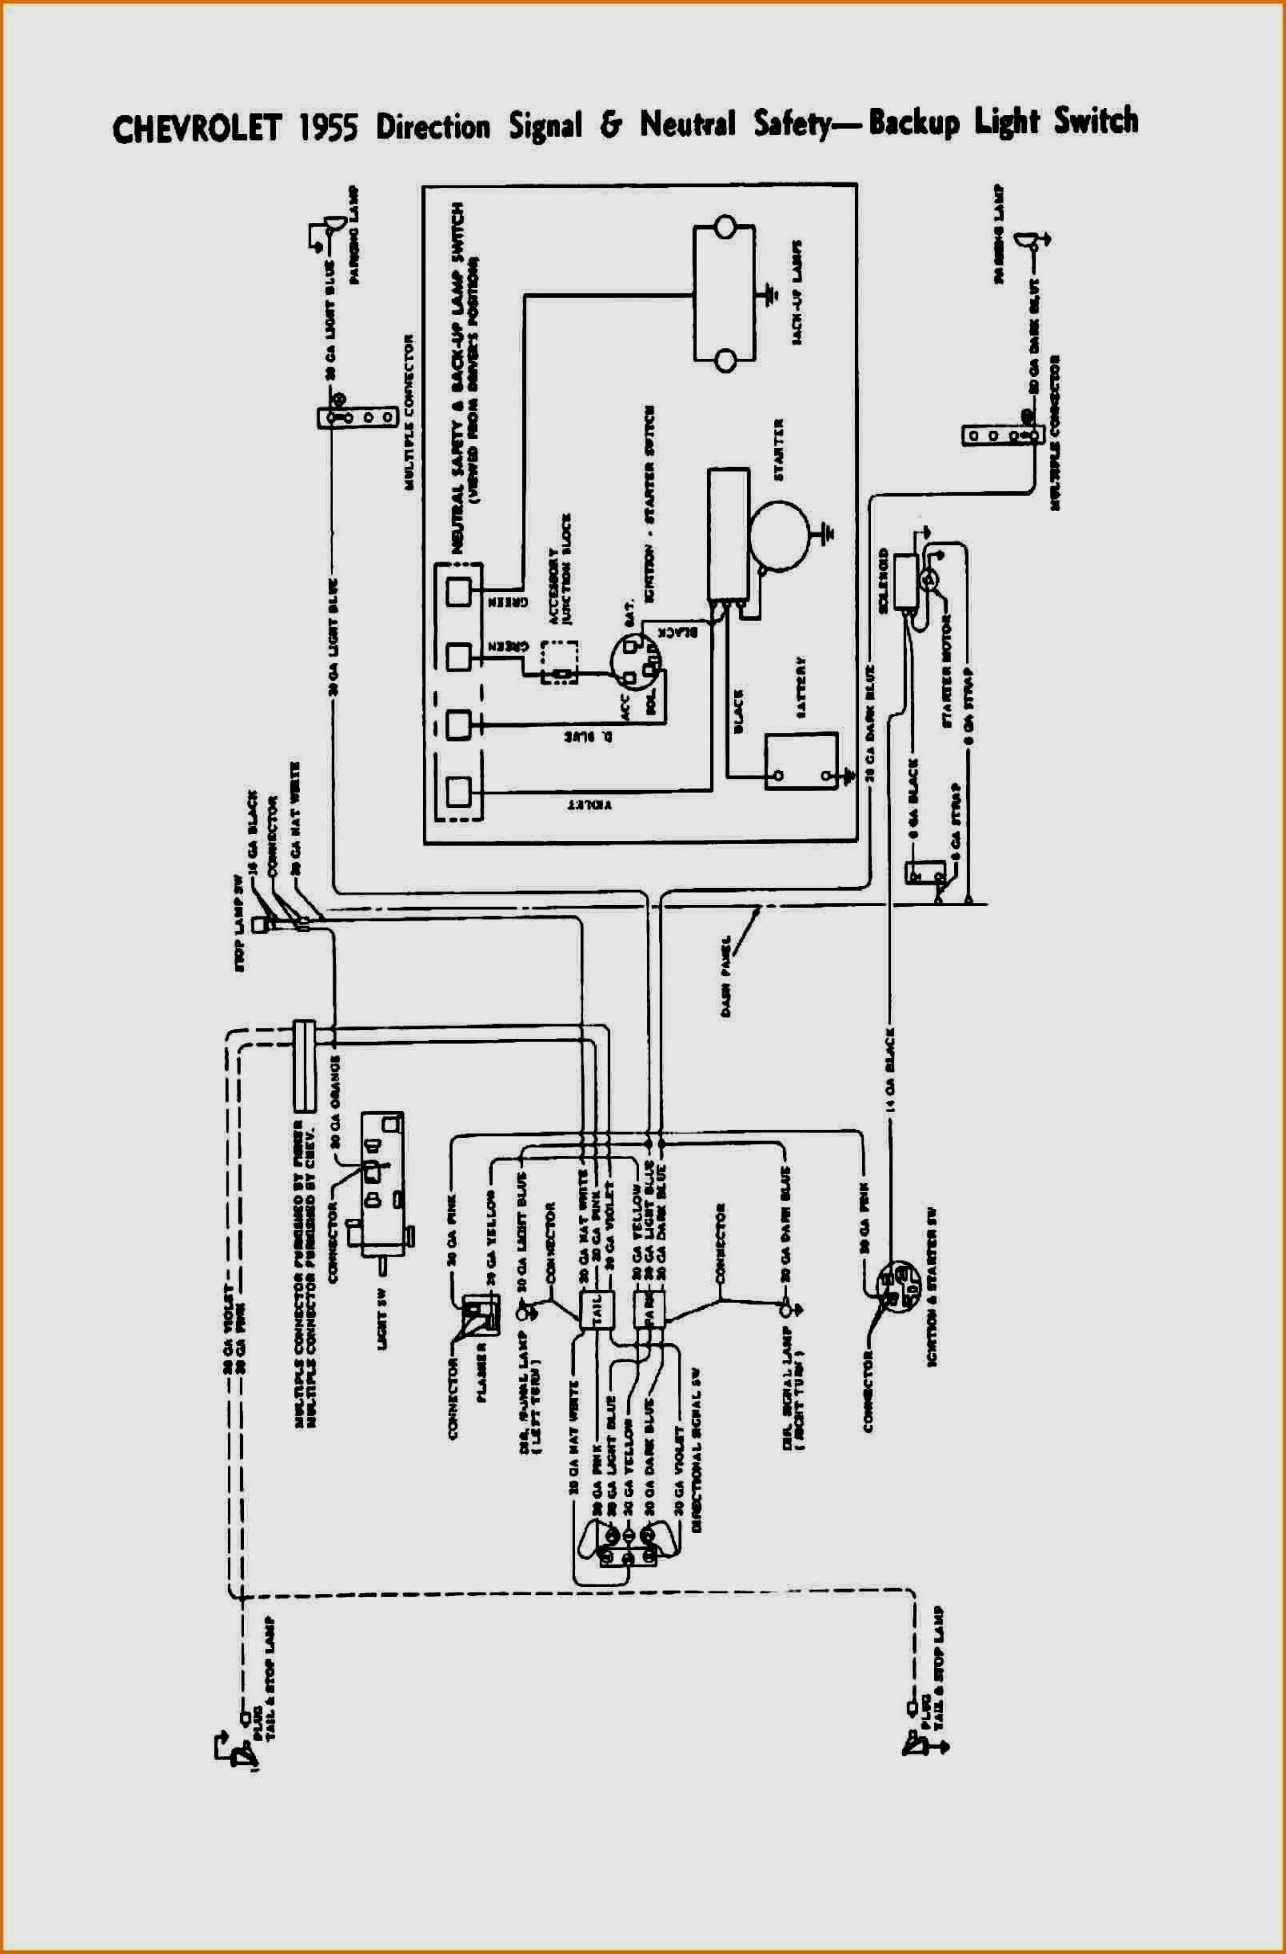 Square D Air pressor Pressure Switch Wiring Diagram wiring diagram air pressor pressure switch inspirationa pressure